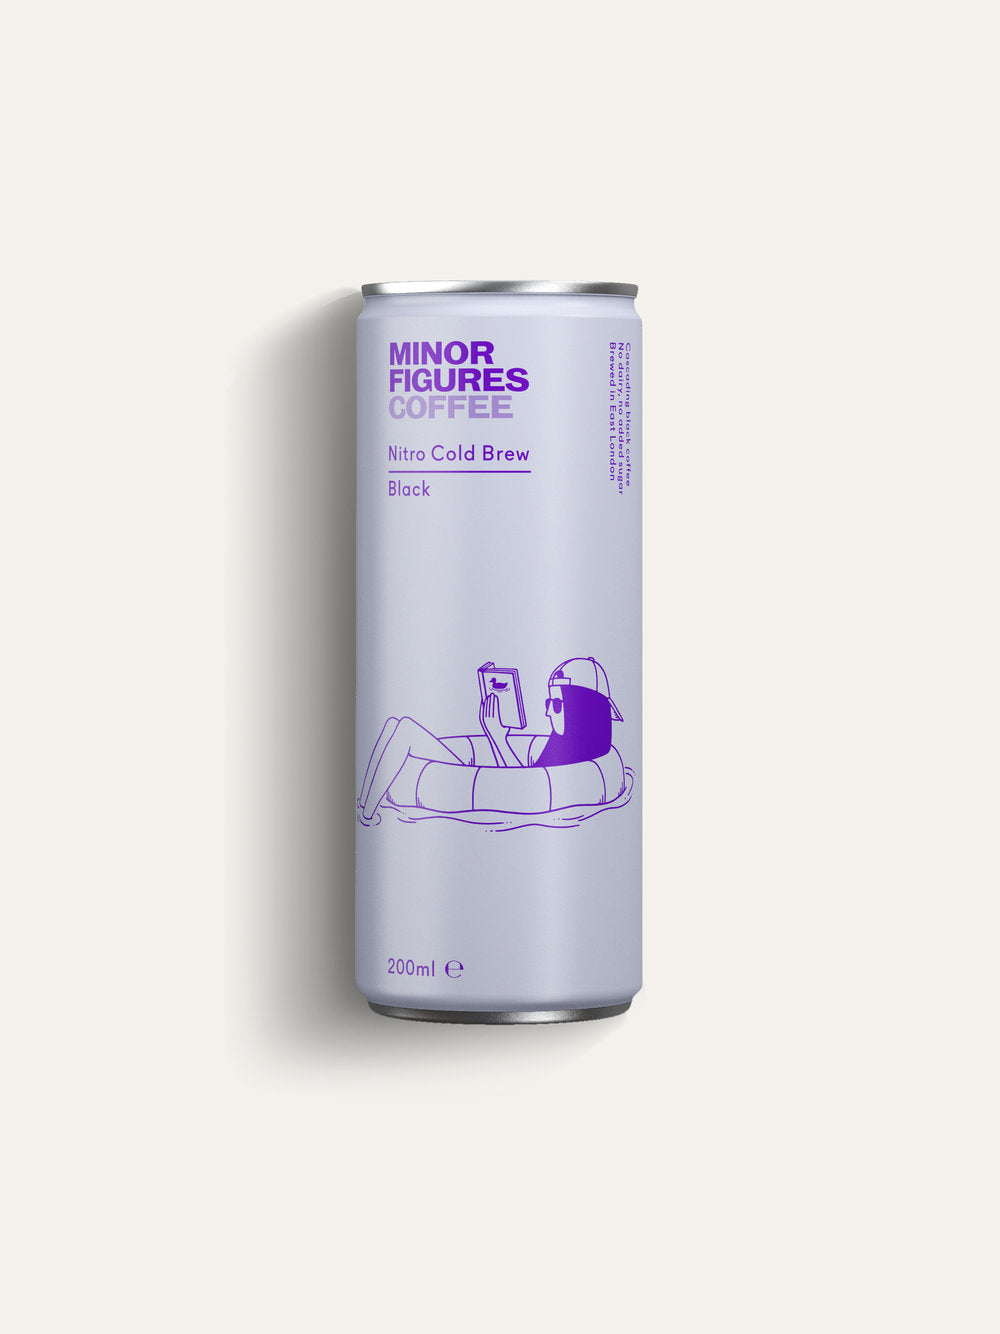 Minor Figures Nitro Cold Brew Black - 200ml - Shipping From Just £2.99 Or FREE When You Spend £60 Or More